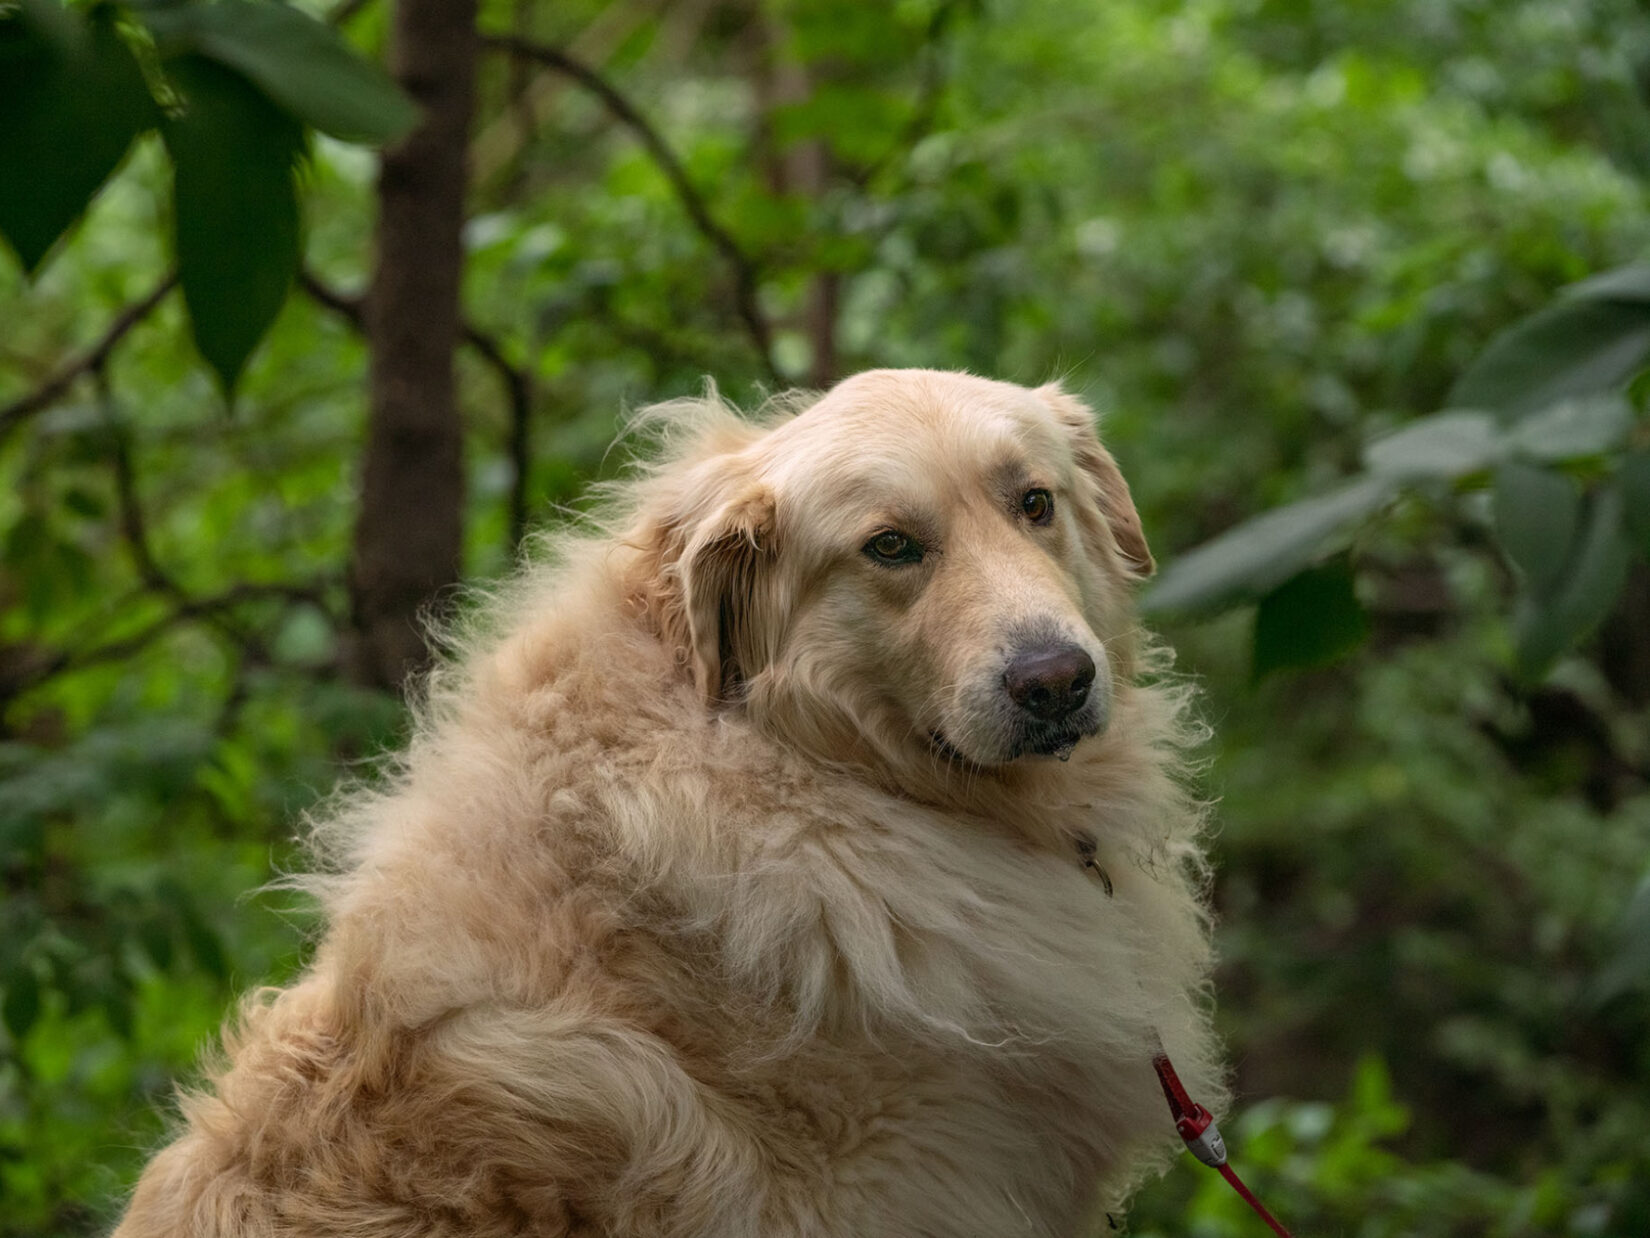 A dog with a fluffy, golden coat with the green of the Park in the background